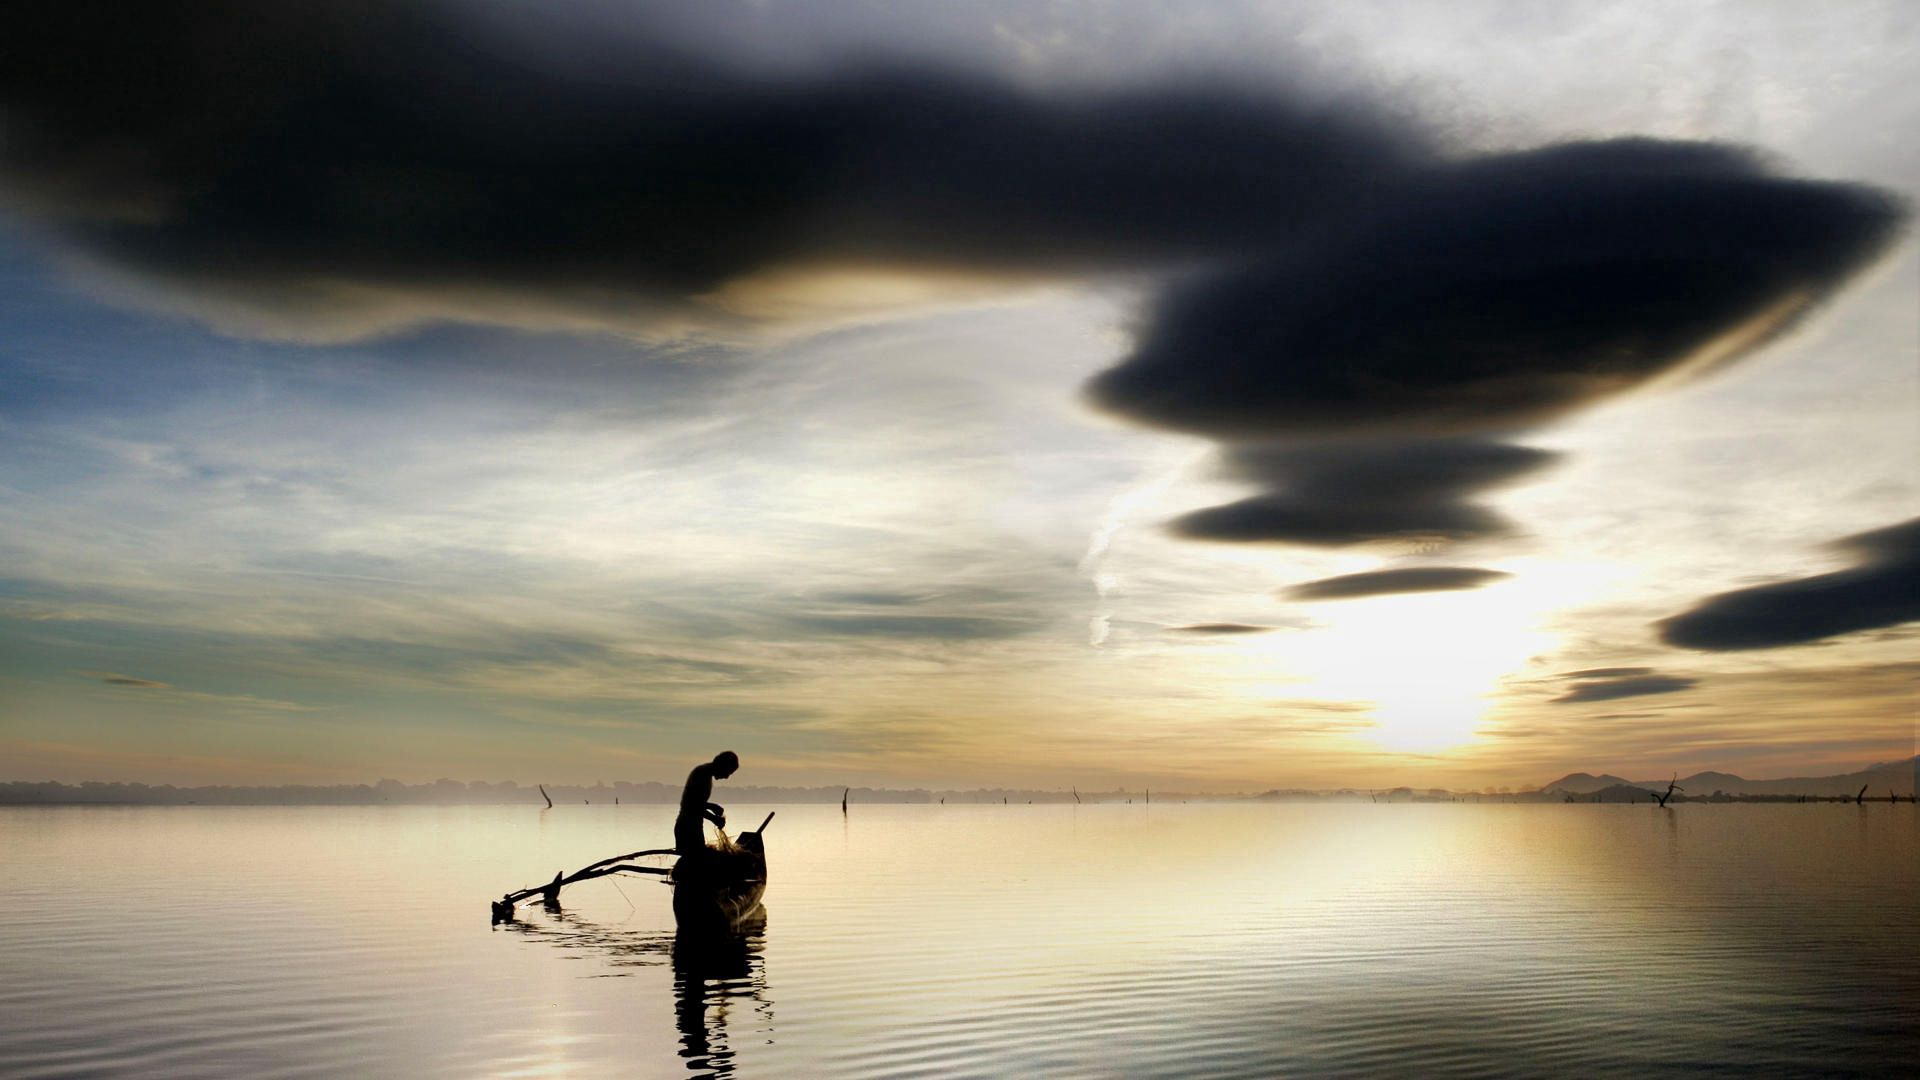 97712 free wallpaper 2160x3840 for phone, download images Nature, Sky, Clouds, Lake, Boat, Fisherman 2160x3840 for mobile